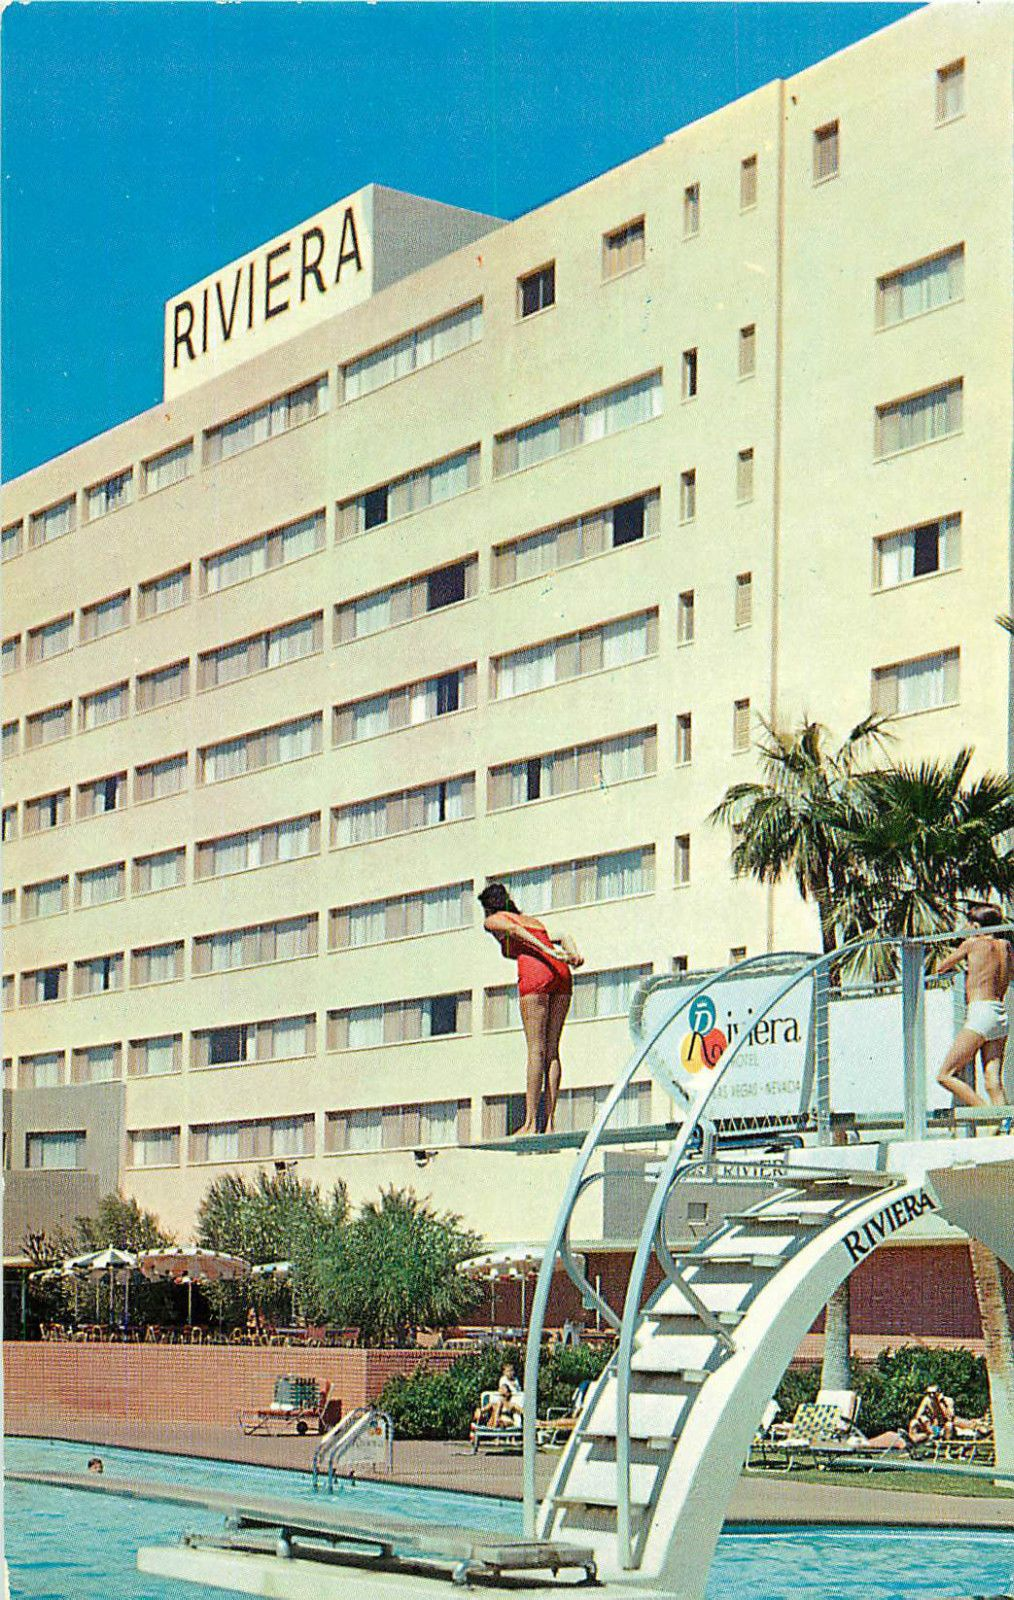 Las vegas nv riviera hotel casino swimming pool chrome p c for Pool show las vegas november